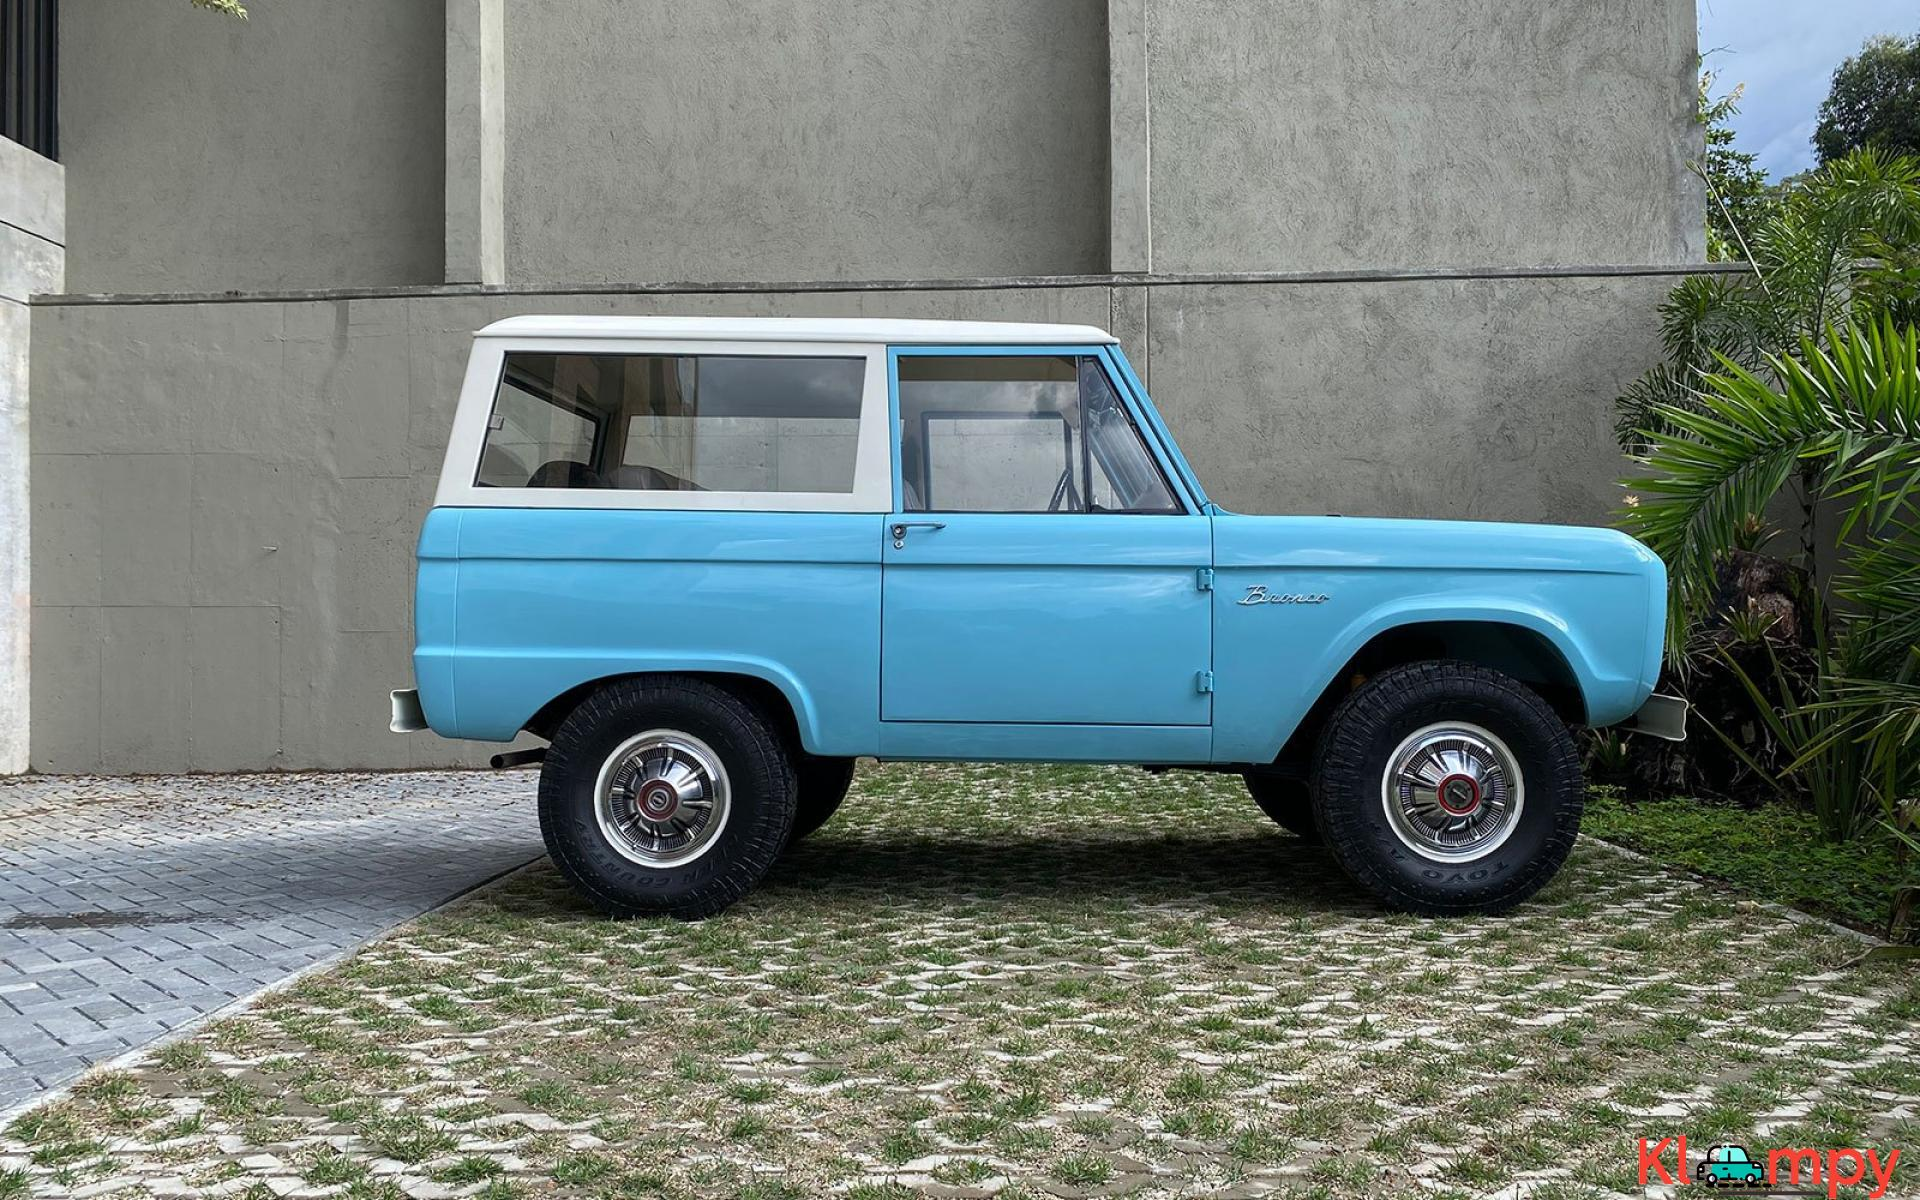 1967 Ford Bronco 170 Inline-Six - 6/21